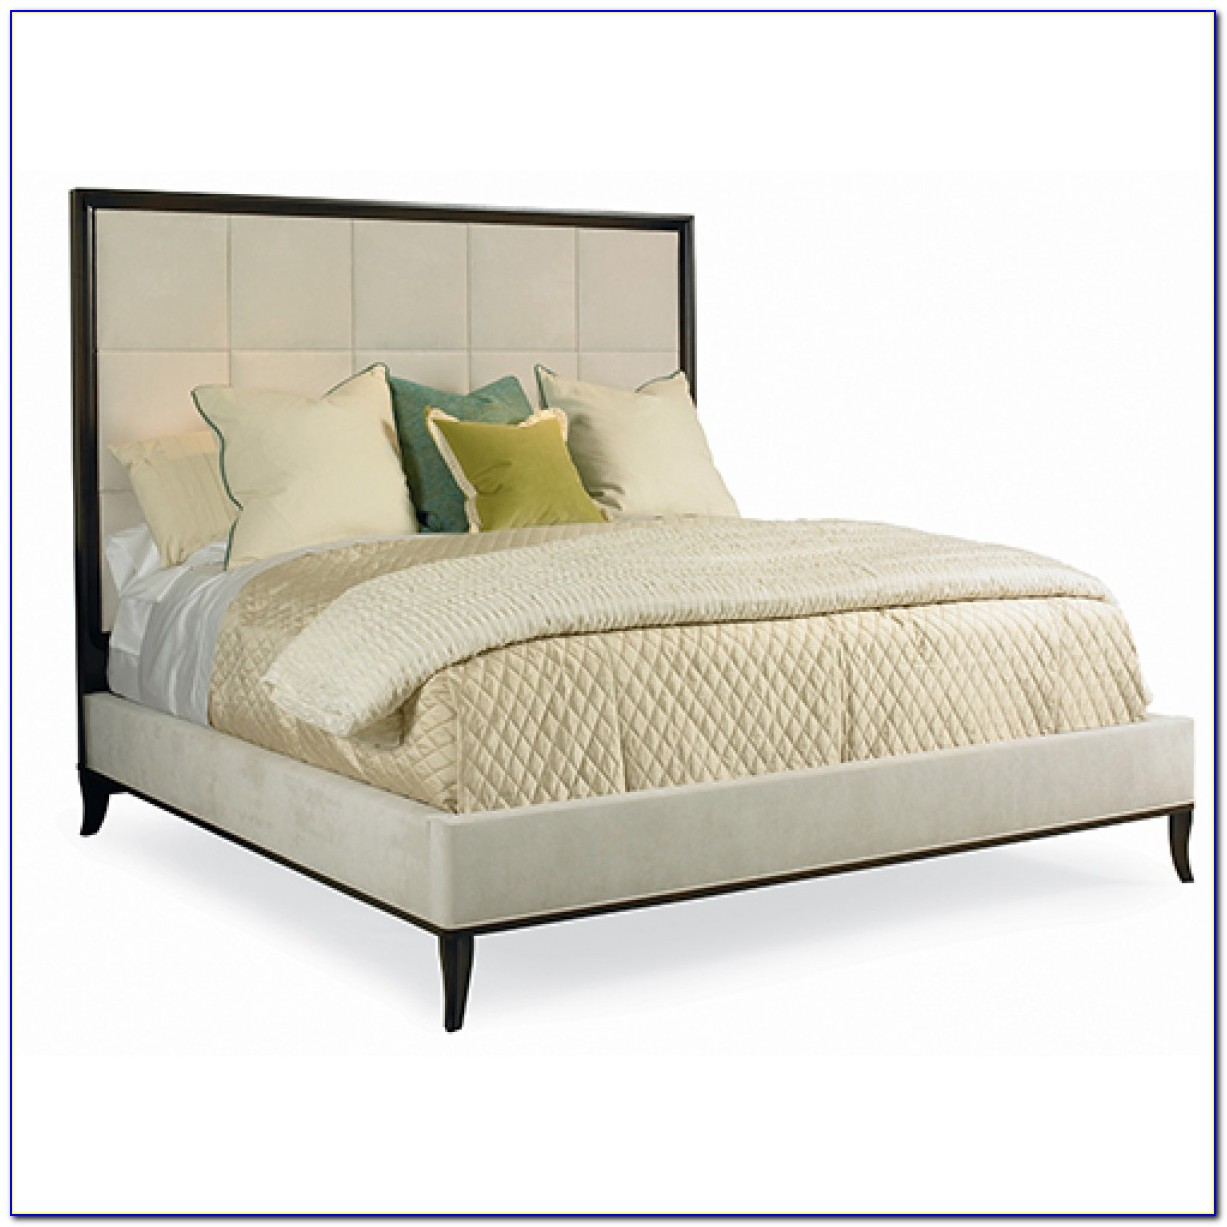 How To Make A Cal King Upholstered Headboard